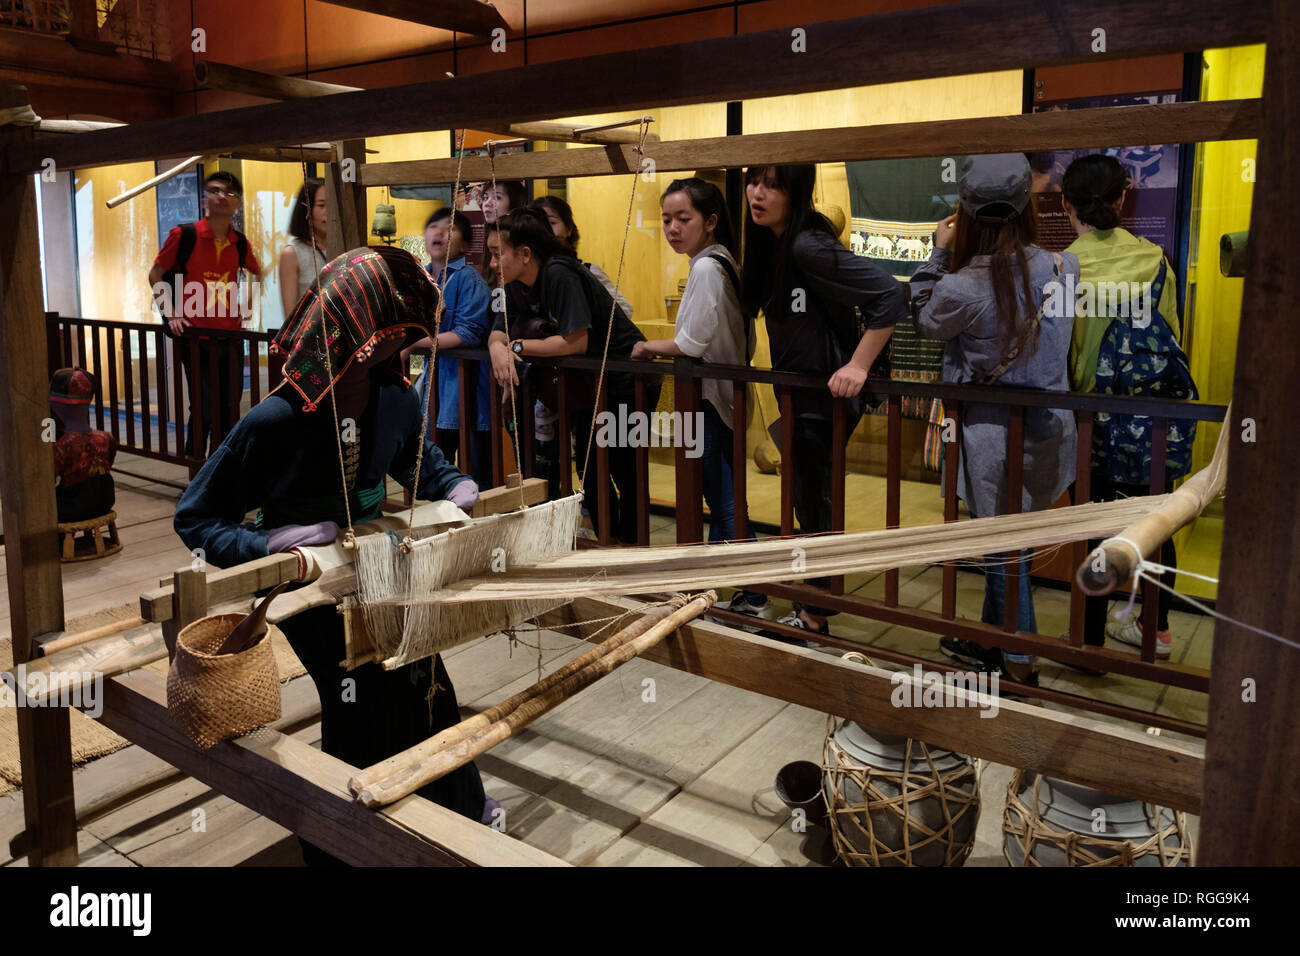 Asian tourists at the Vietnam Museum of Ethnology, Hanoi, Vietnam, Asia - Stock Image